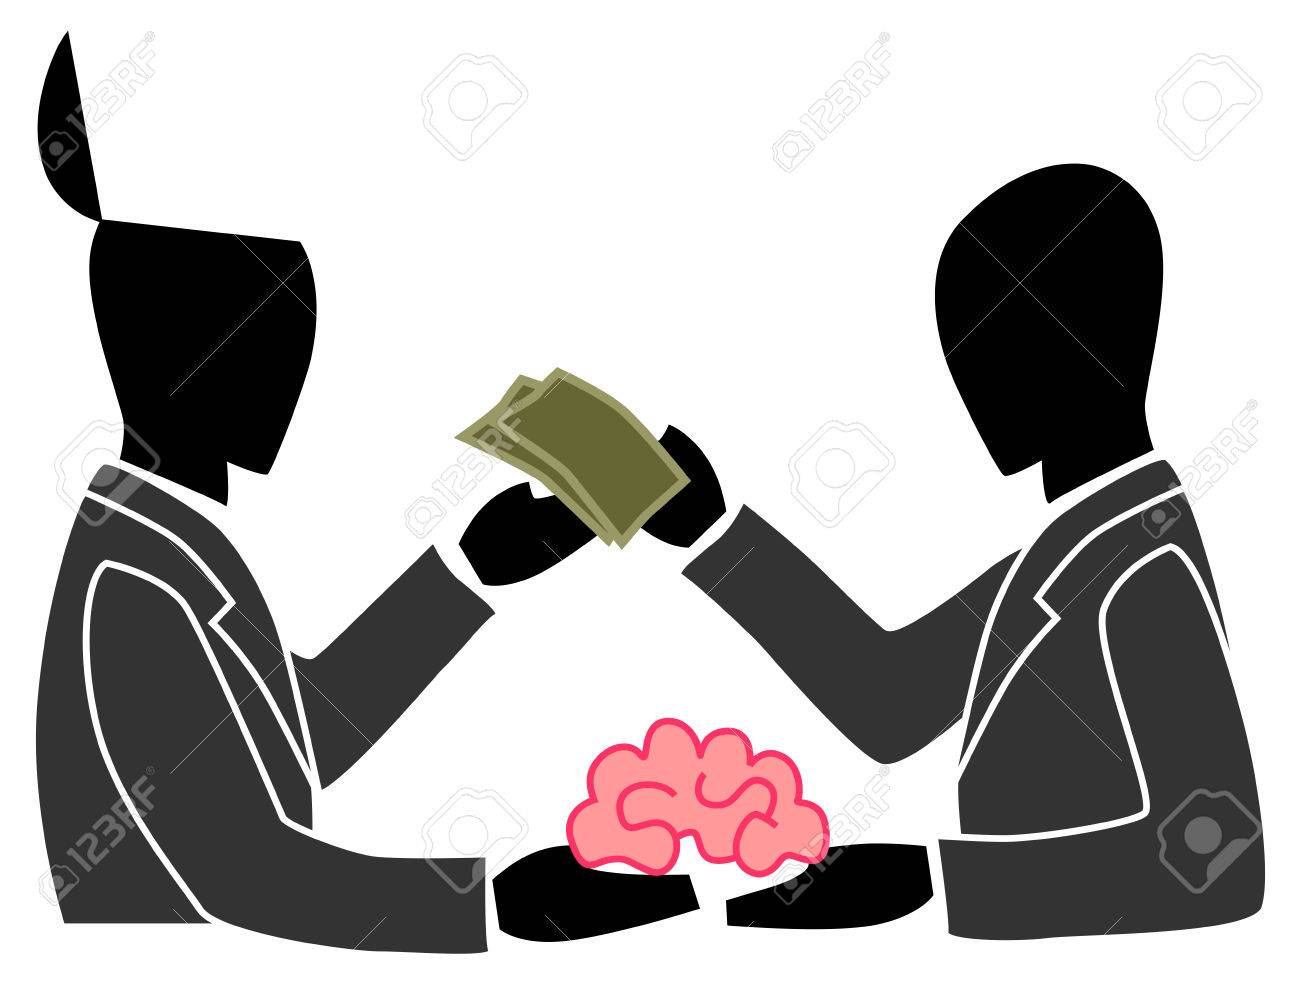 A person is selling his own brain to another person  This can be the concept of outsourcing or anything about creativity Stock Vector - 23895990